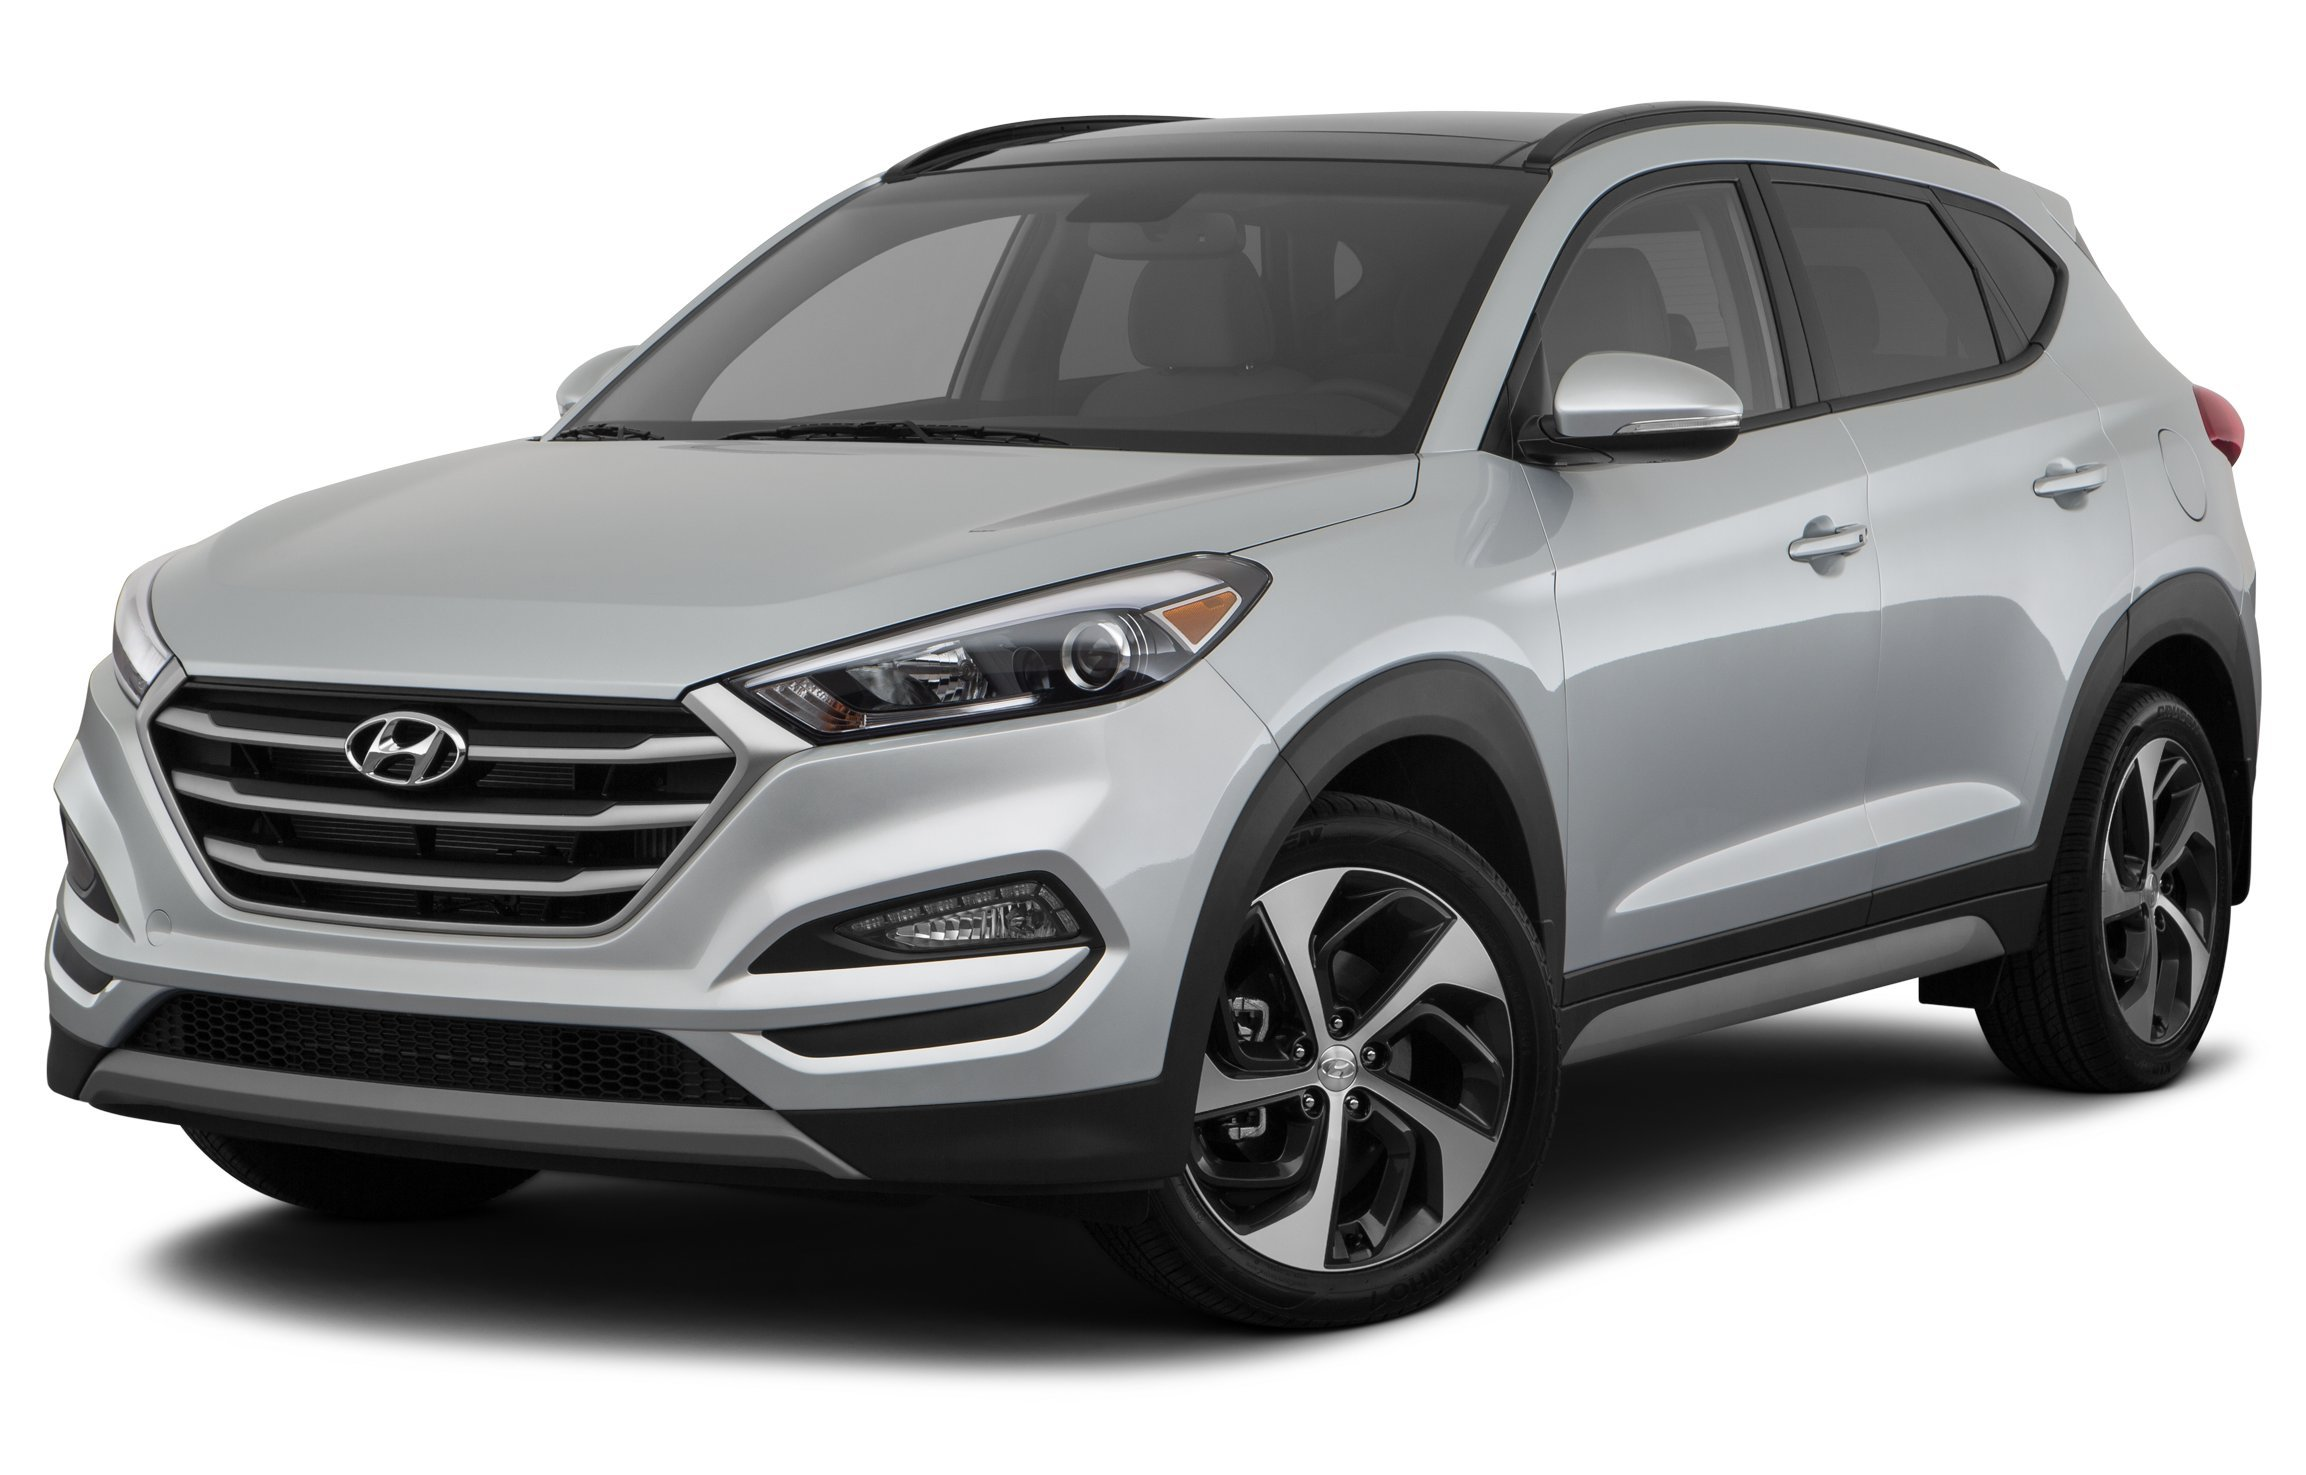 2018 hyundai tucson reviews images and specs. Black Bedroom Furniture Sets. Home Design Ideas